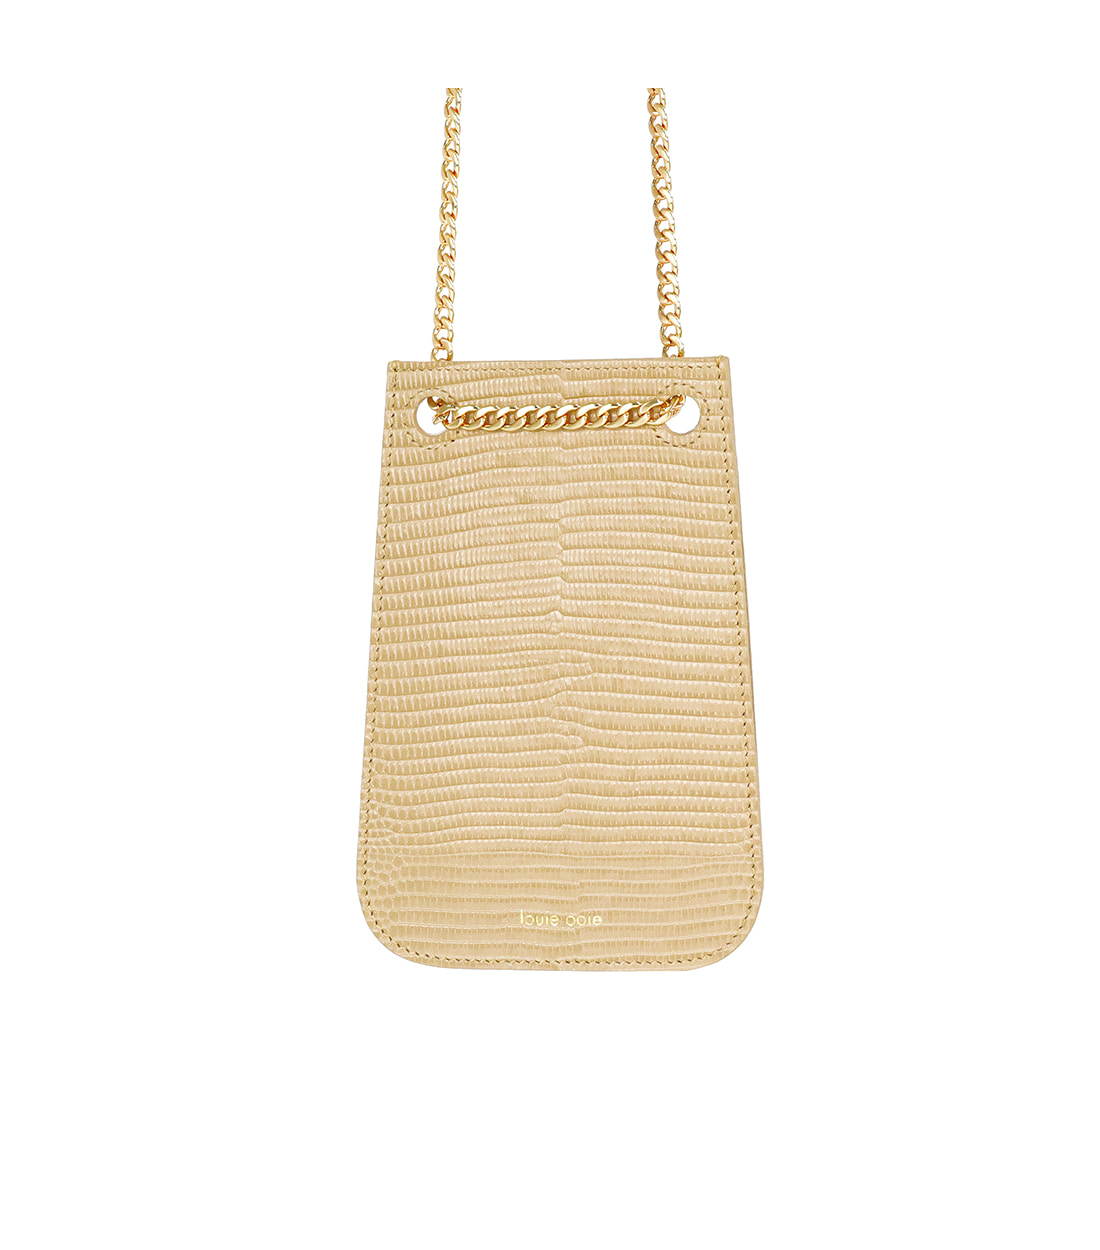 doris bag - beige embo